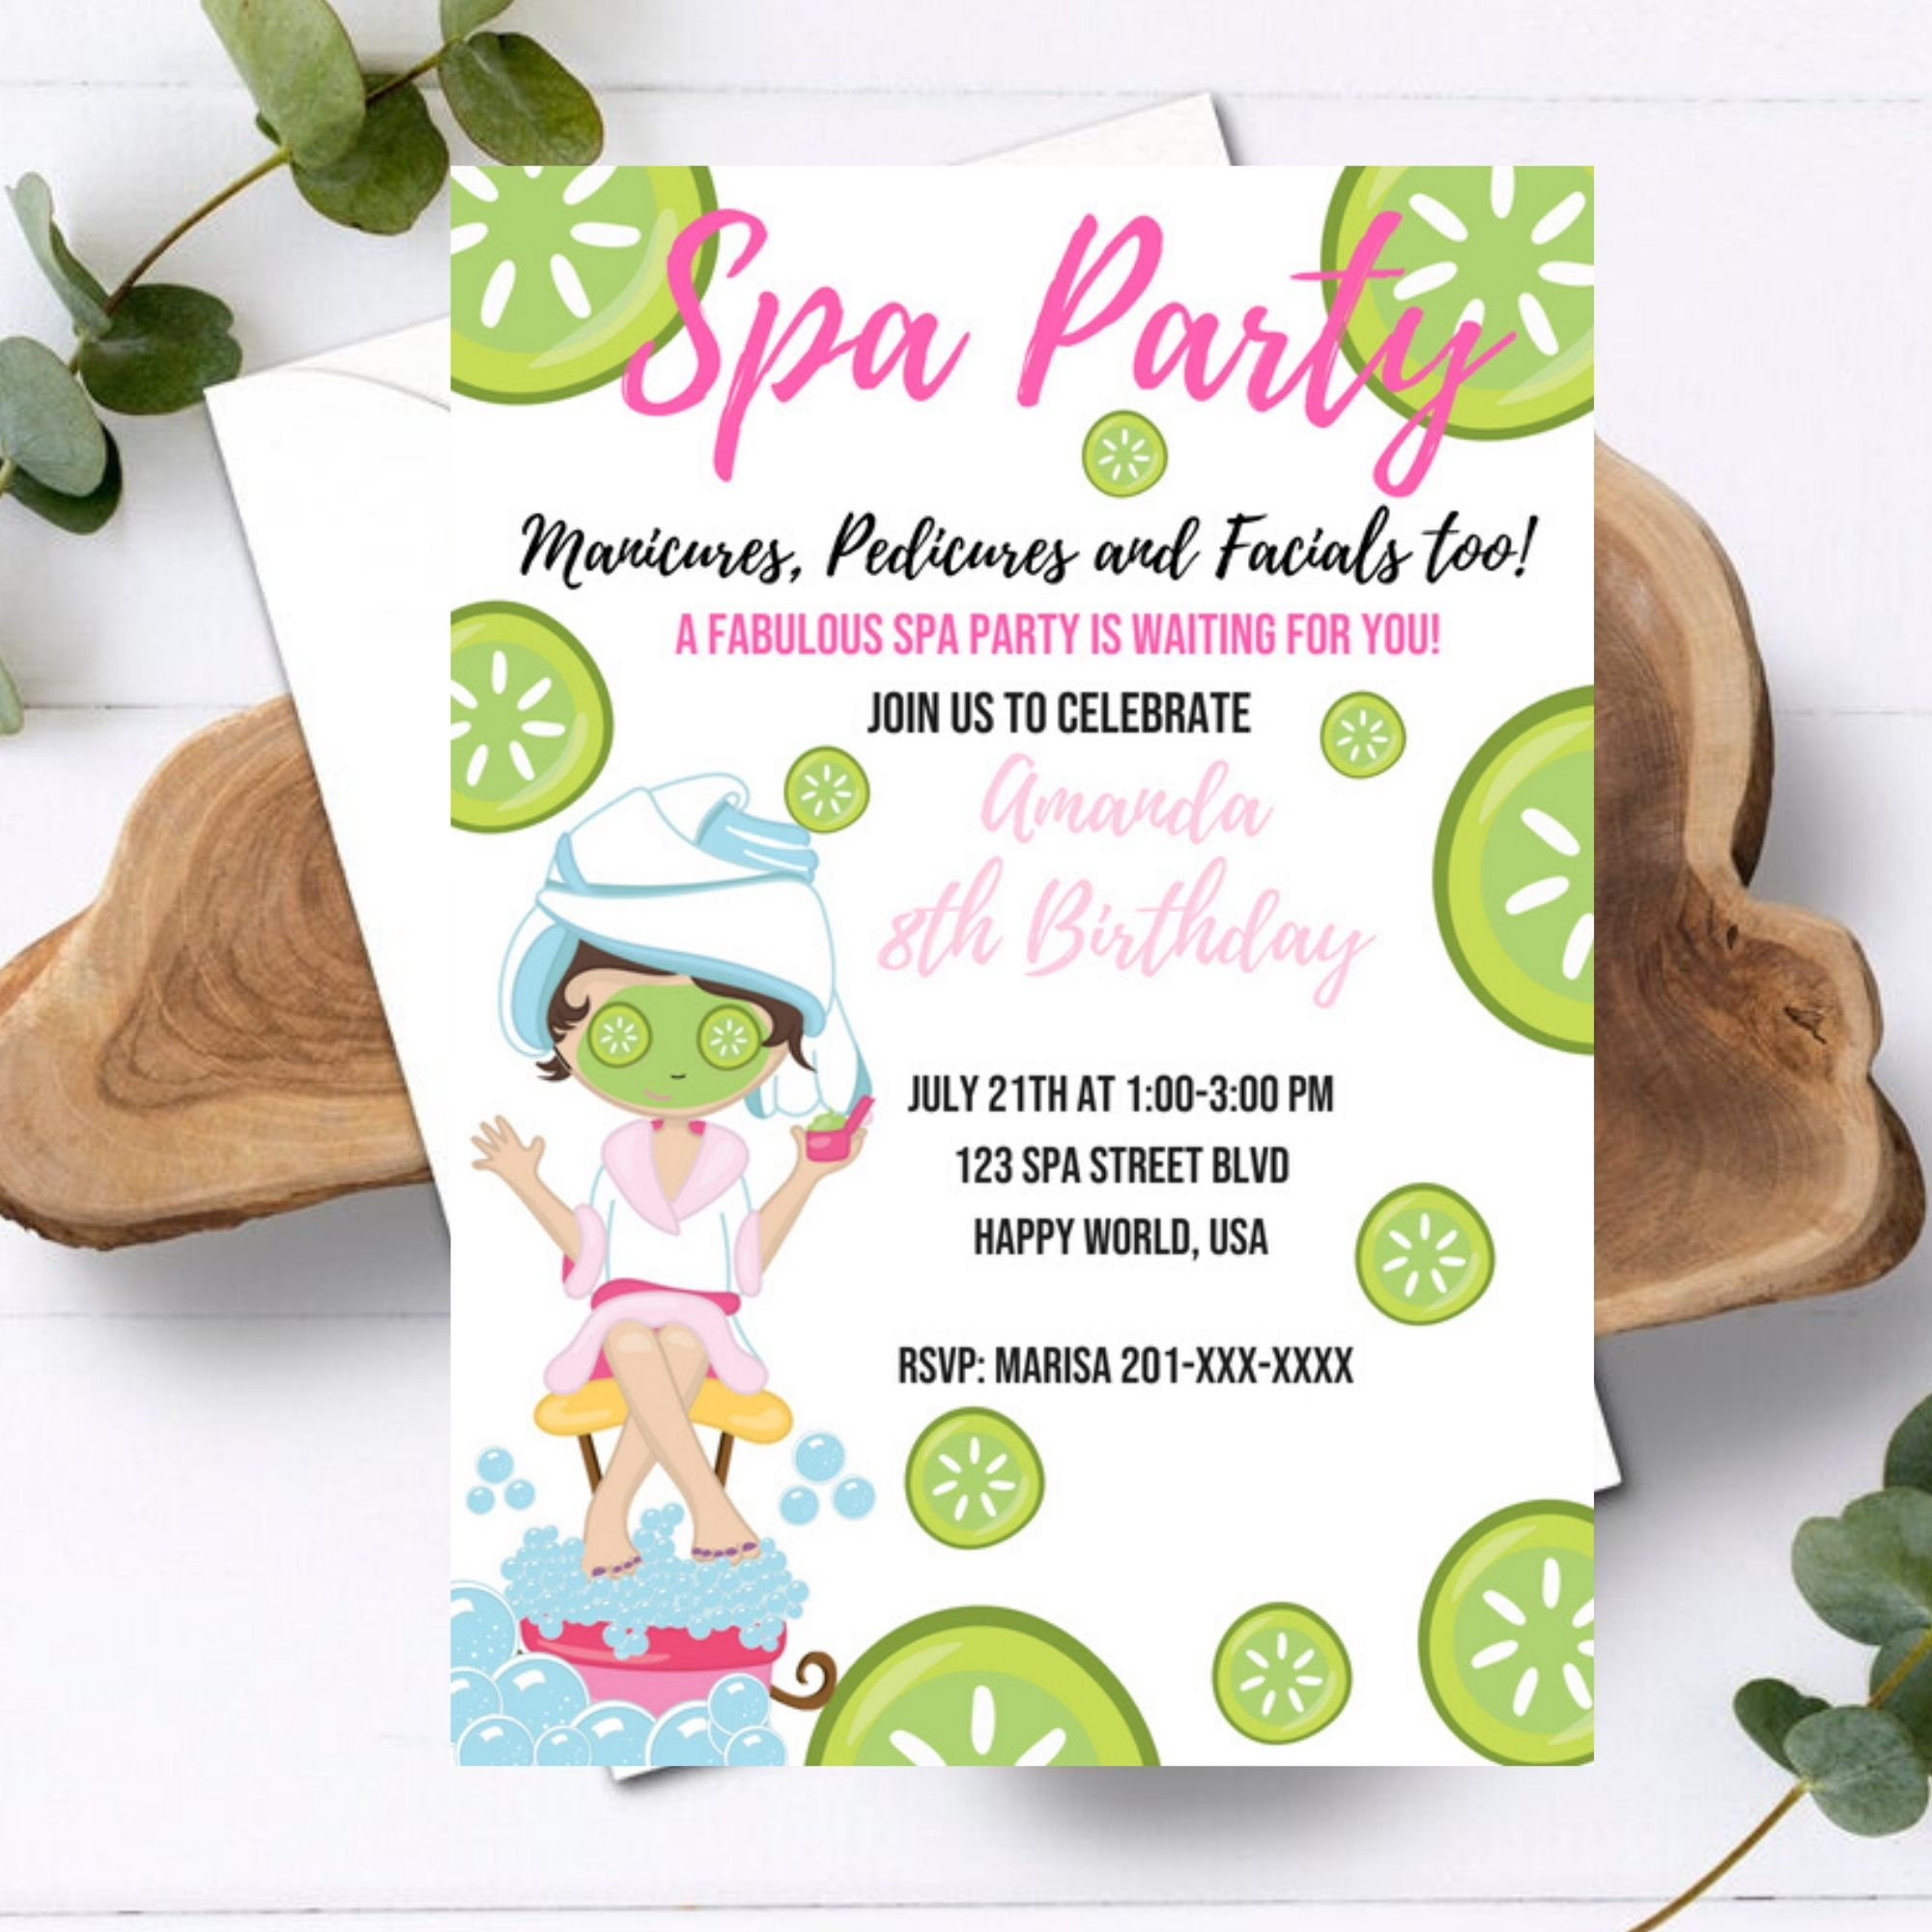 Manicures, Pedicures and Facial too! Spa Party Birthday Invitation